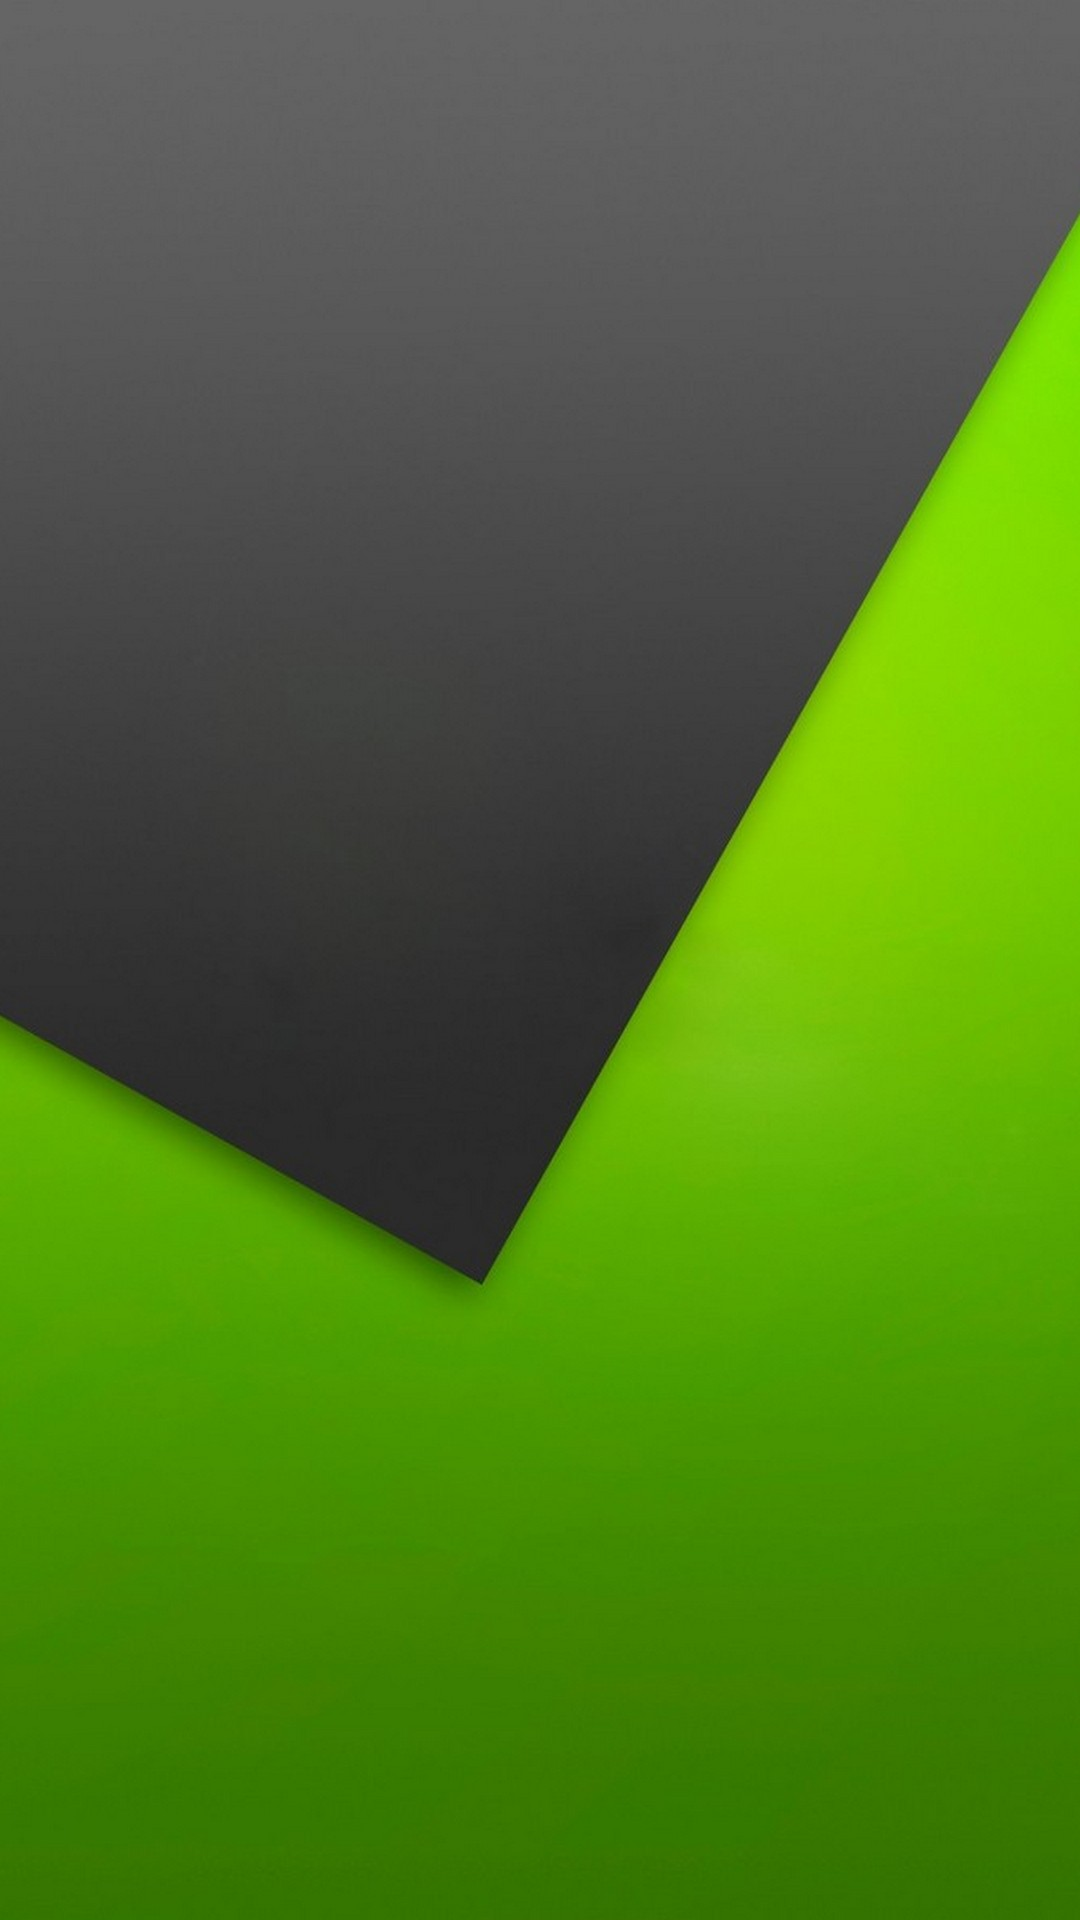 Wallpaper Green Colour Iphone With Image Resolution - Green Wallpaper 4k Iphone - HD Wallpaper